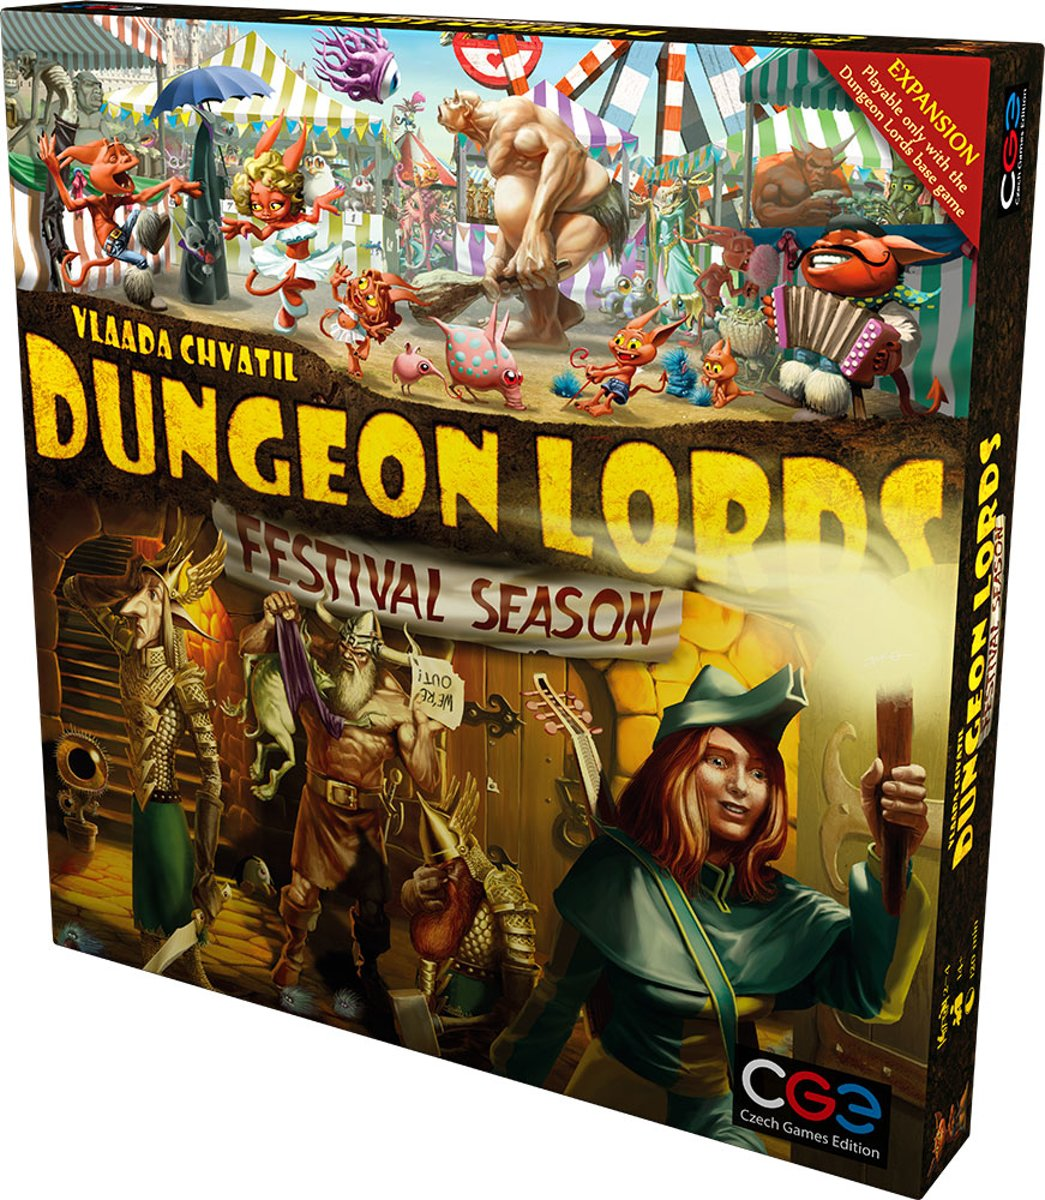 Dungeon Lords Festival Season